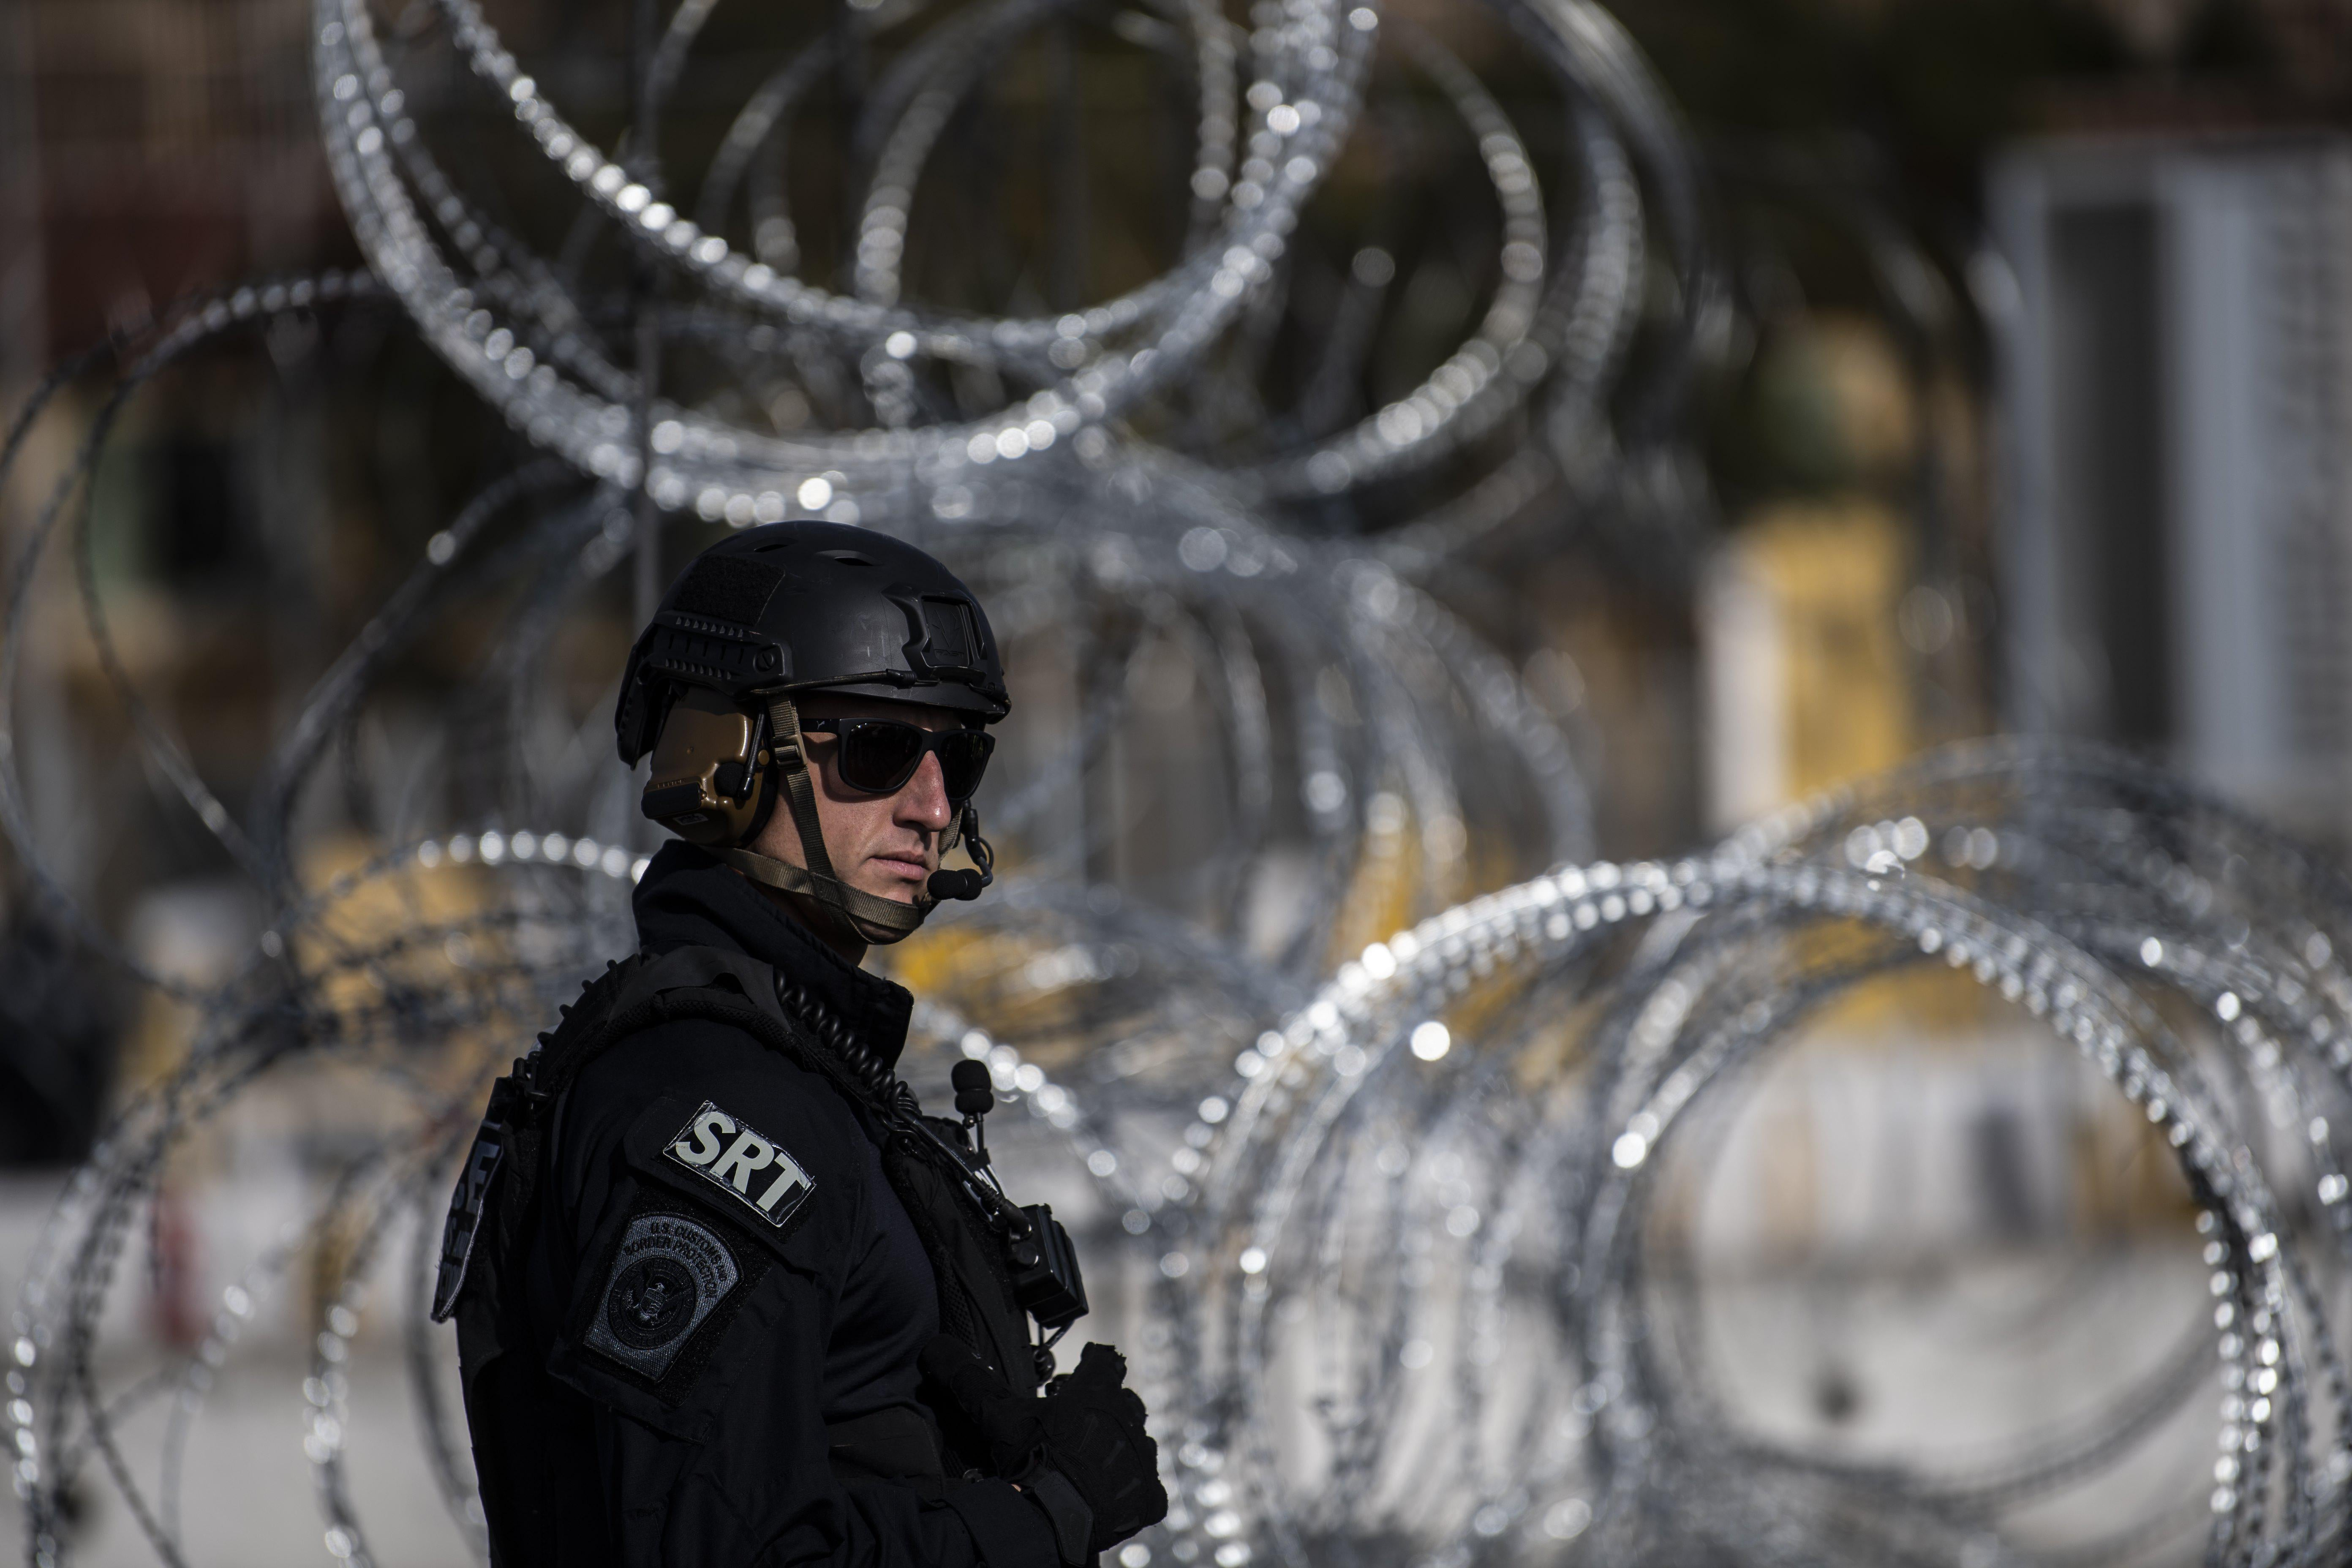 A US Customs and Border Protection (CBP) officer takes part in a operational readiness exercise at the San Ysidro port of entry in the United States as seen from Tijuana, Baja California State, Mexico, on November 22, 2018.